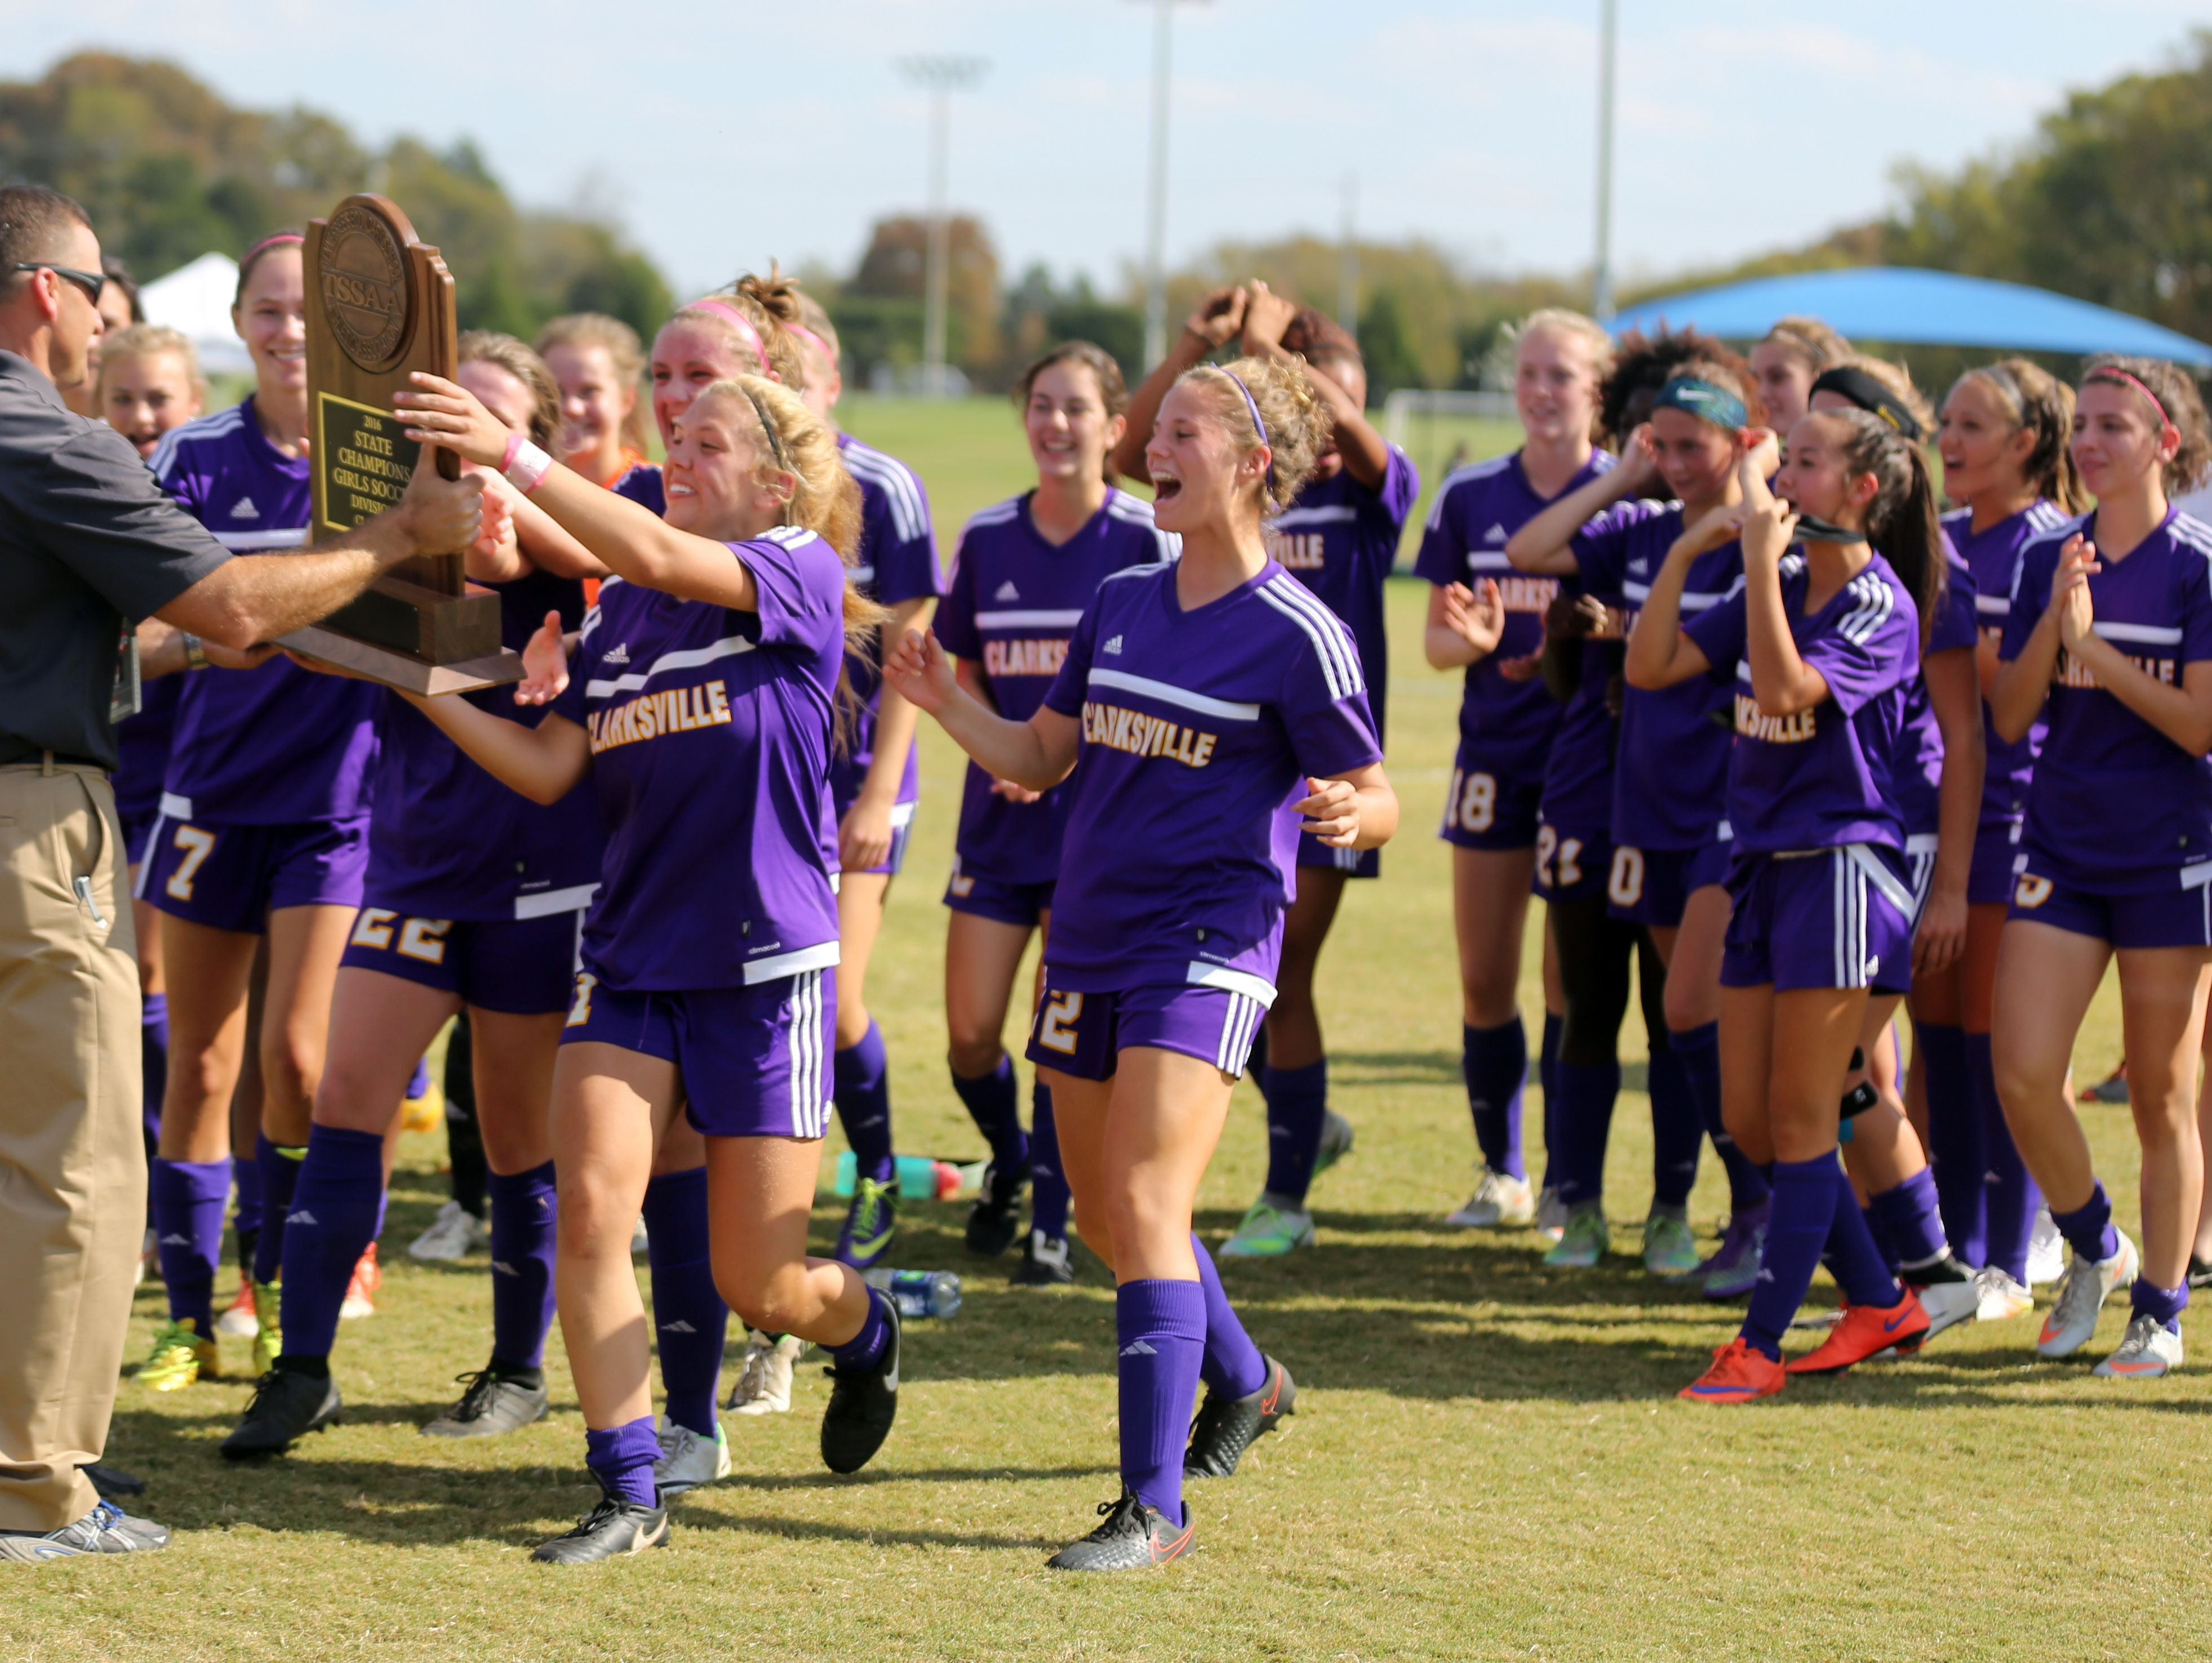 Clarksville receives their trophy after beating Franklin 1-0 in the Class AAA Soccer Championship game Saturday October 29, 2016 at Richard Siegel Soccer Complex in Murfreesboro.